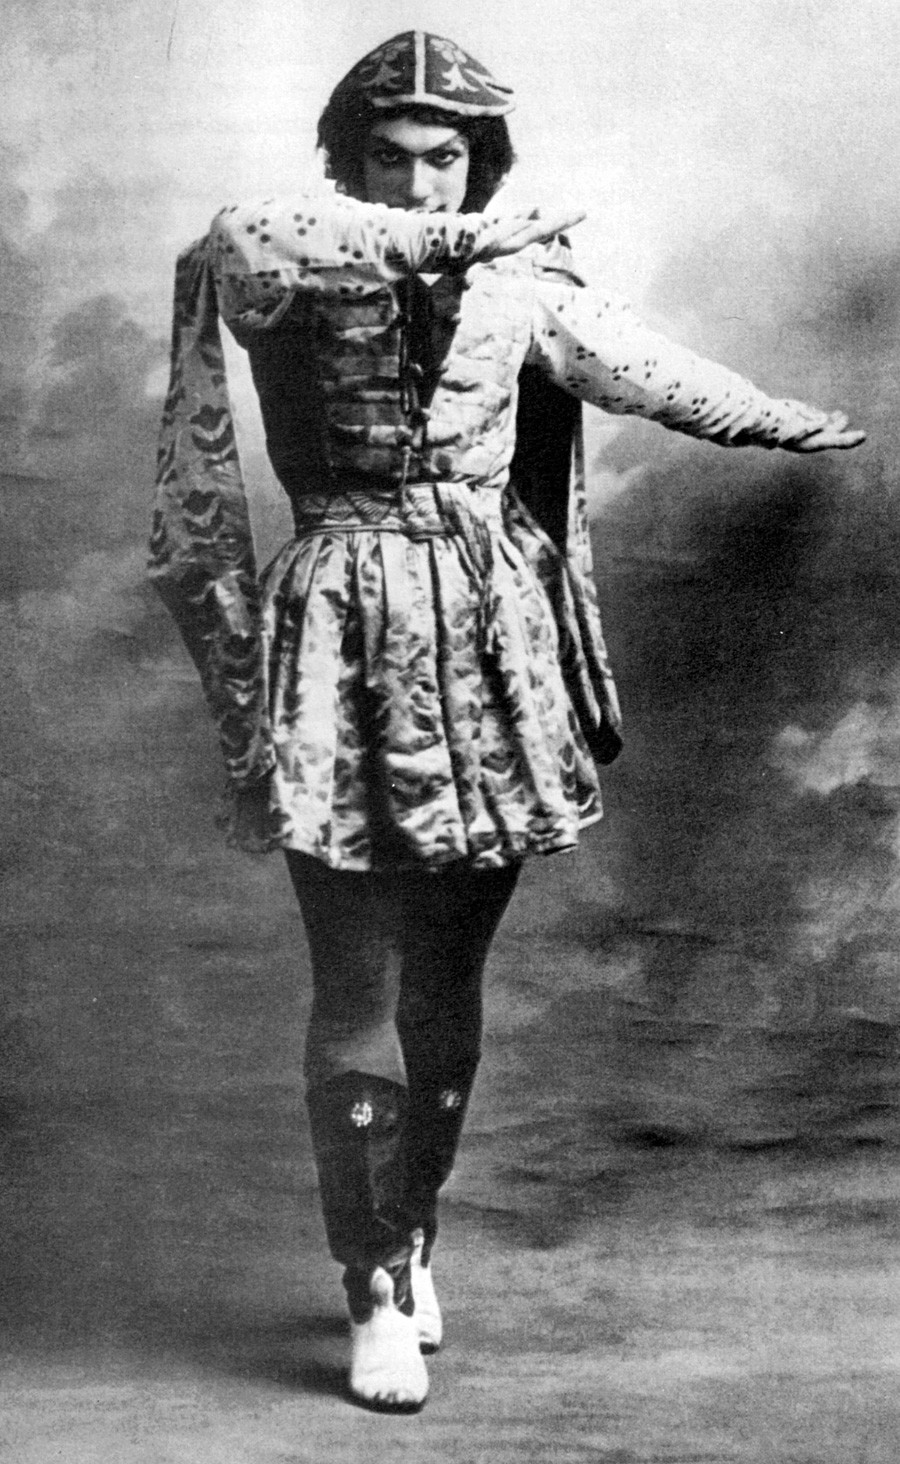 Vaslav Nijinsky (1889-1950) was a Russian ballet dancer who is often cited as the greatest male dancer of the early 20th century. Here he is wearing high boots and a long tunic, peering above his right arm, left arm extended to the side in the Grand pas classique hongrois from Le festin.